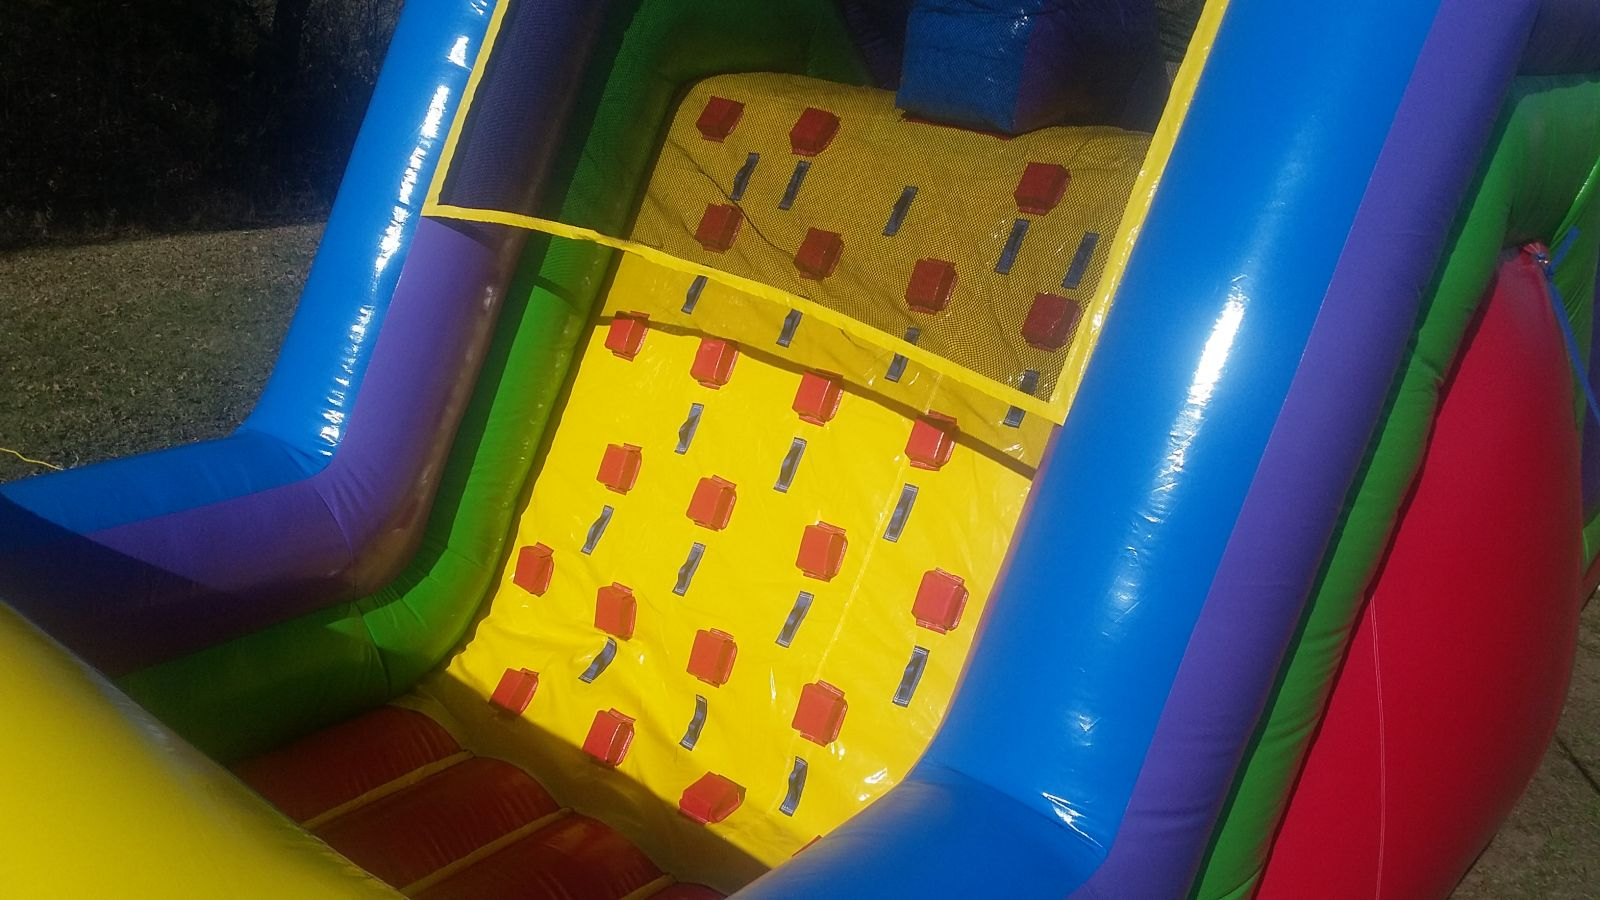 Rock-Wall climbing for 15 foot tall slide on inflatable obstacle course